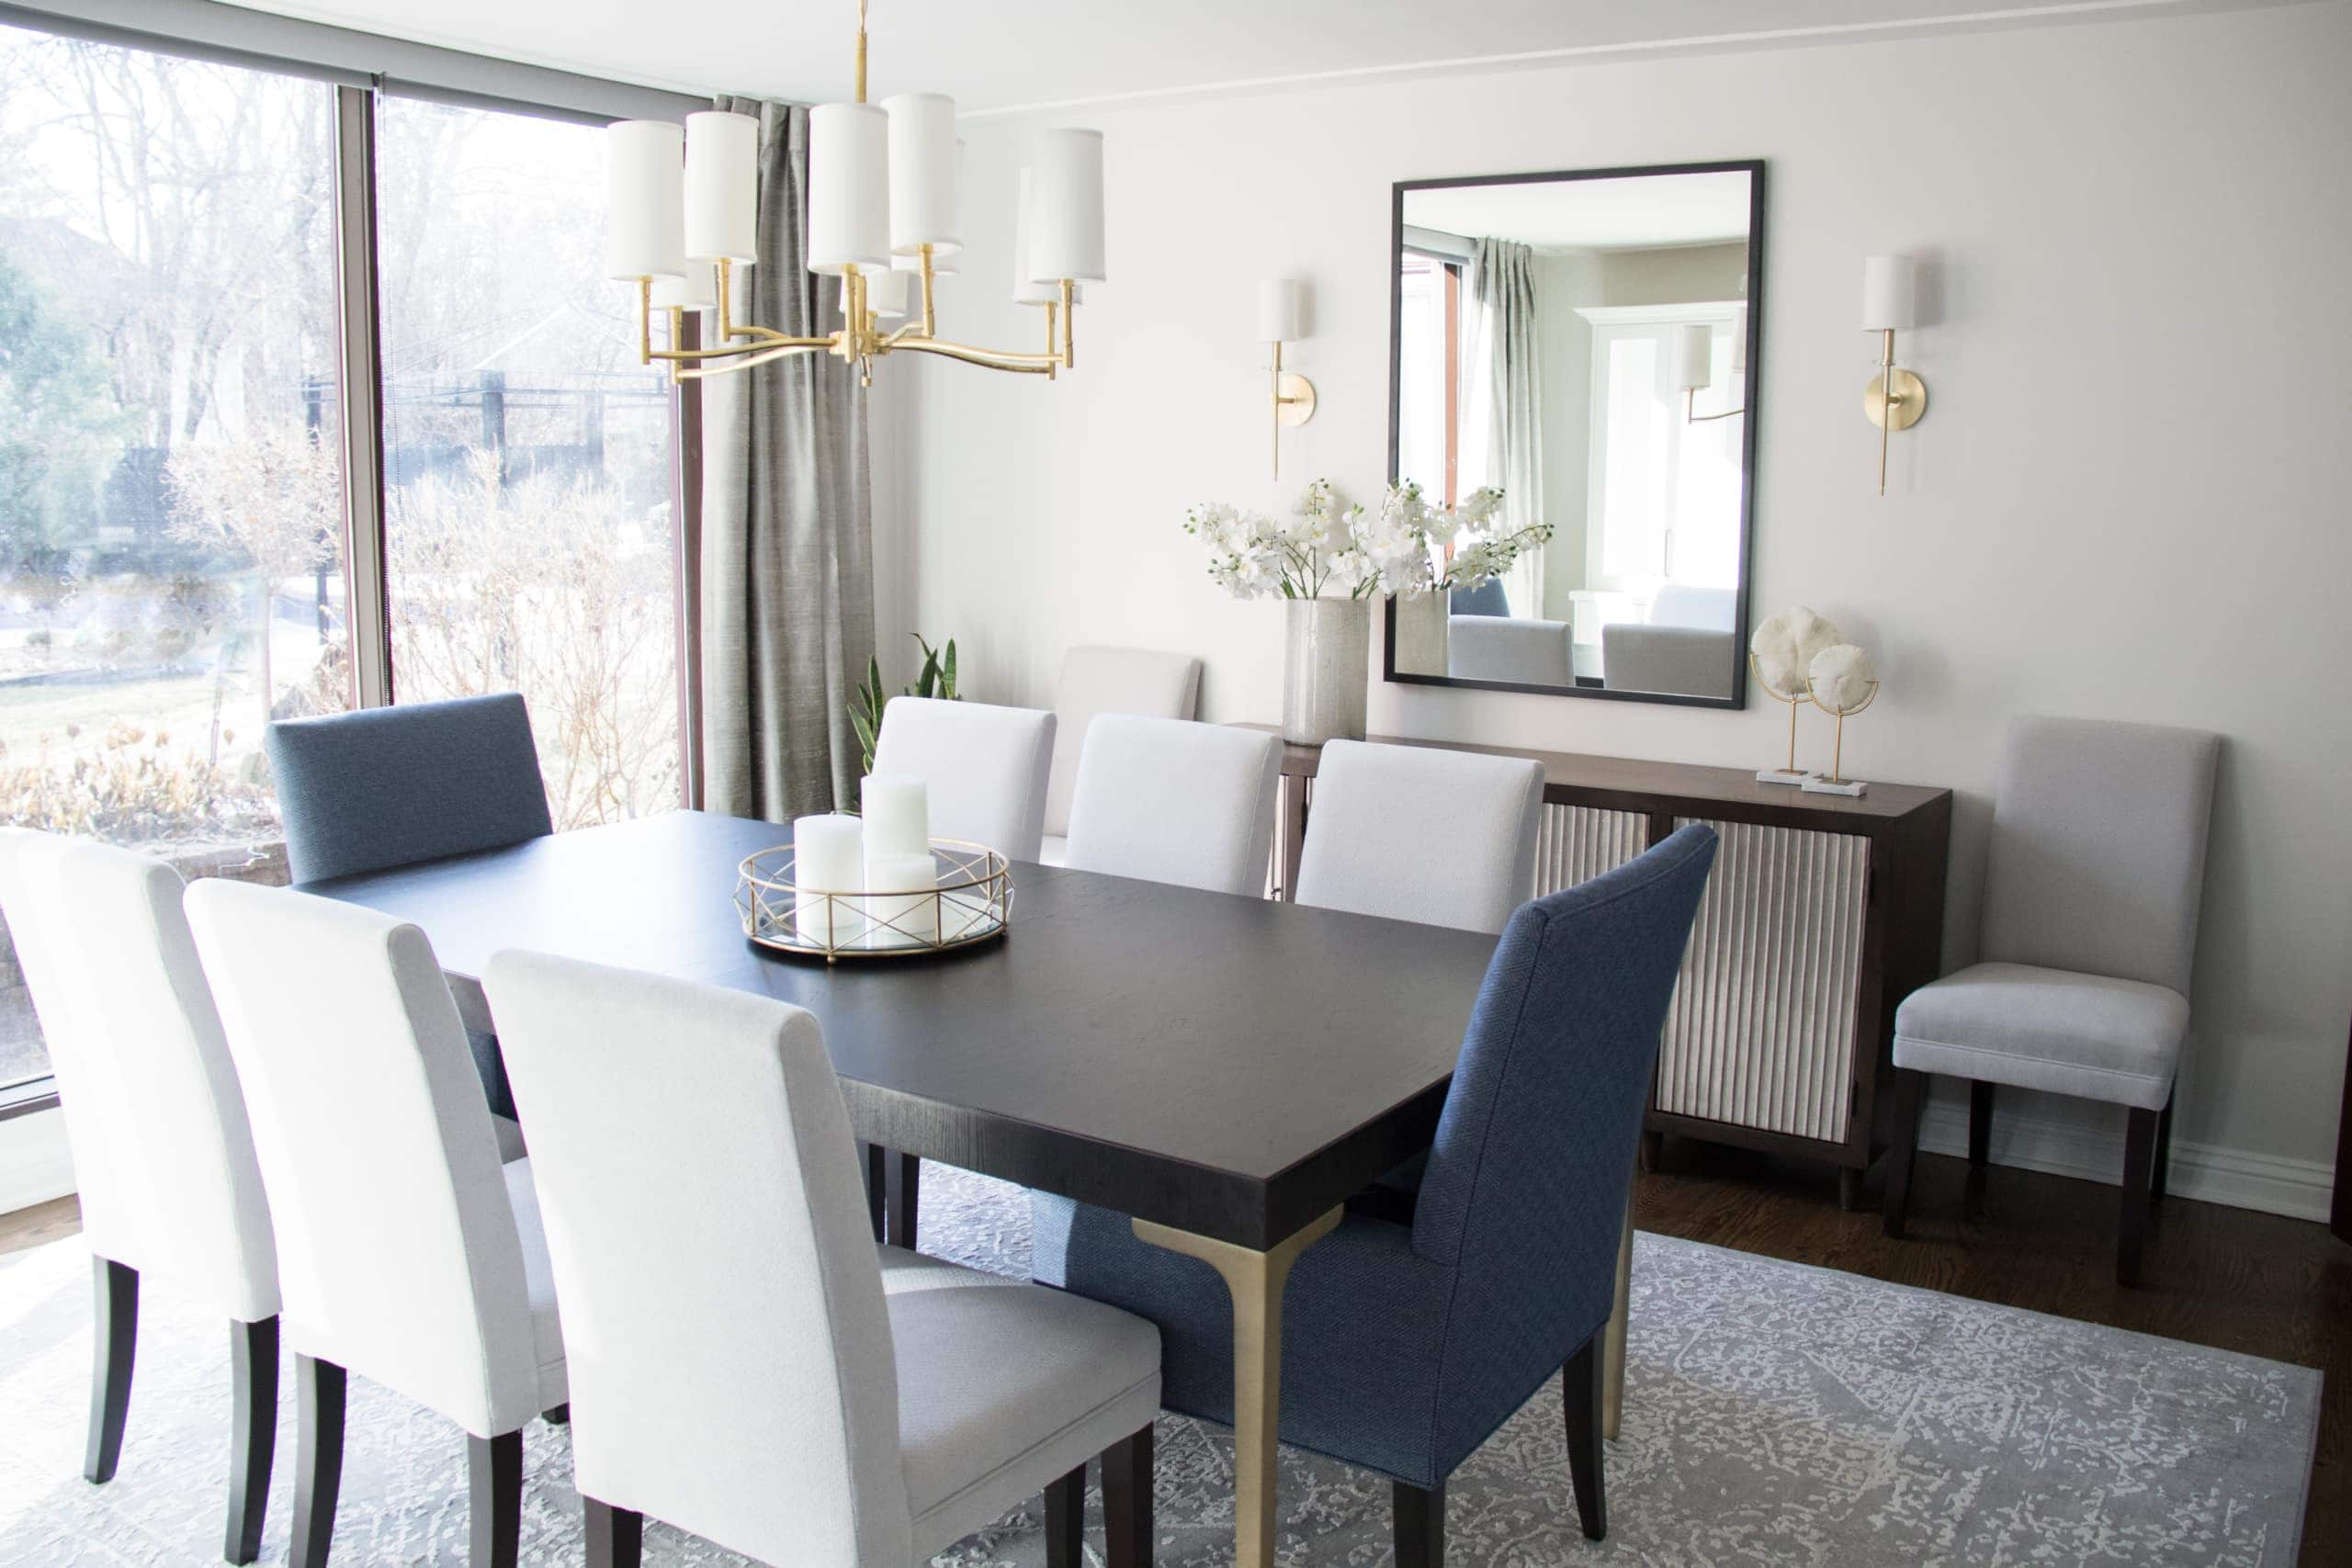 Modern dining room with blue chairs at the ends of the table